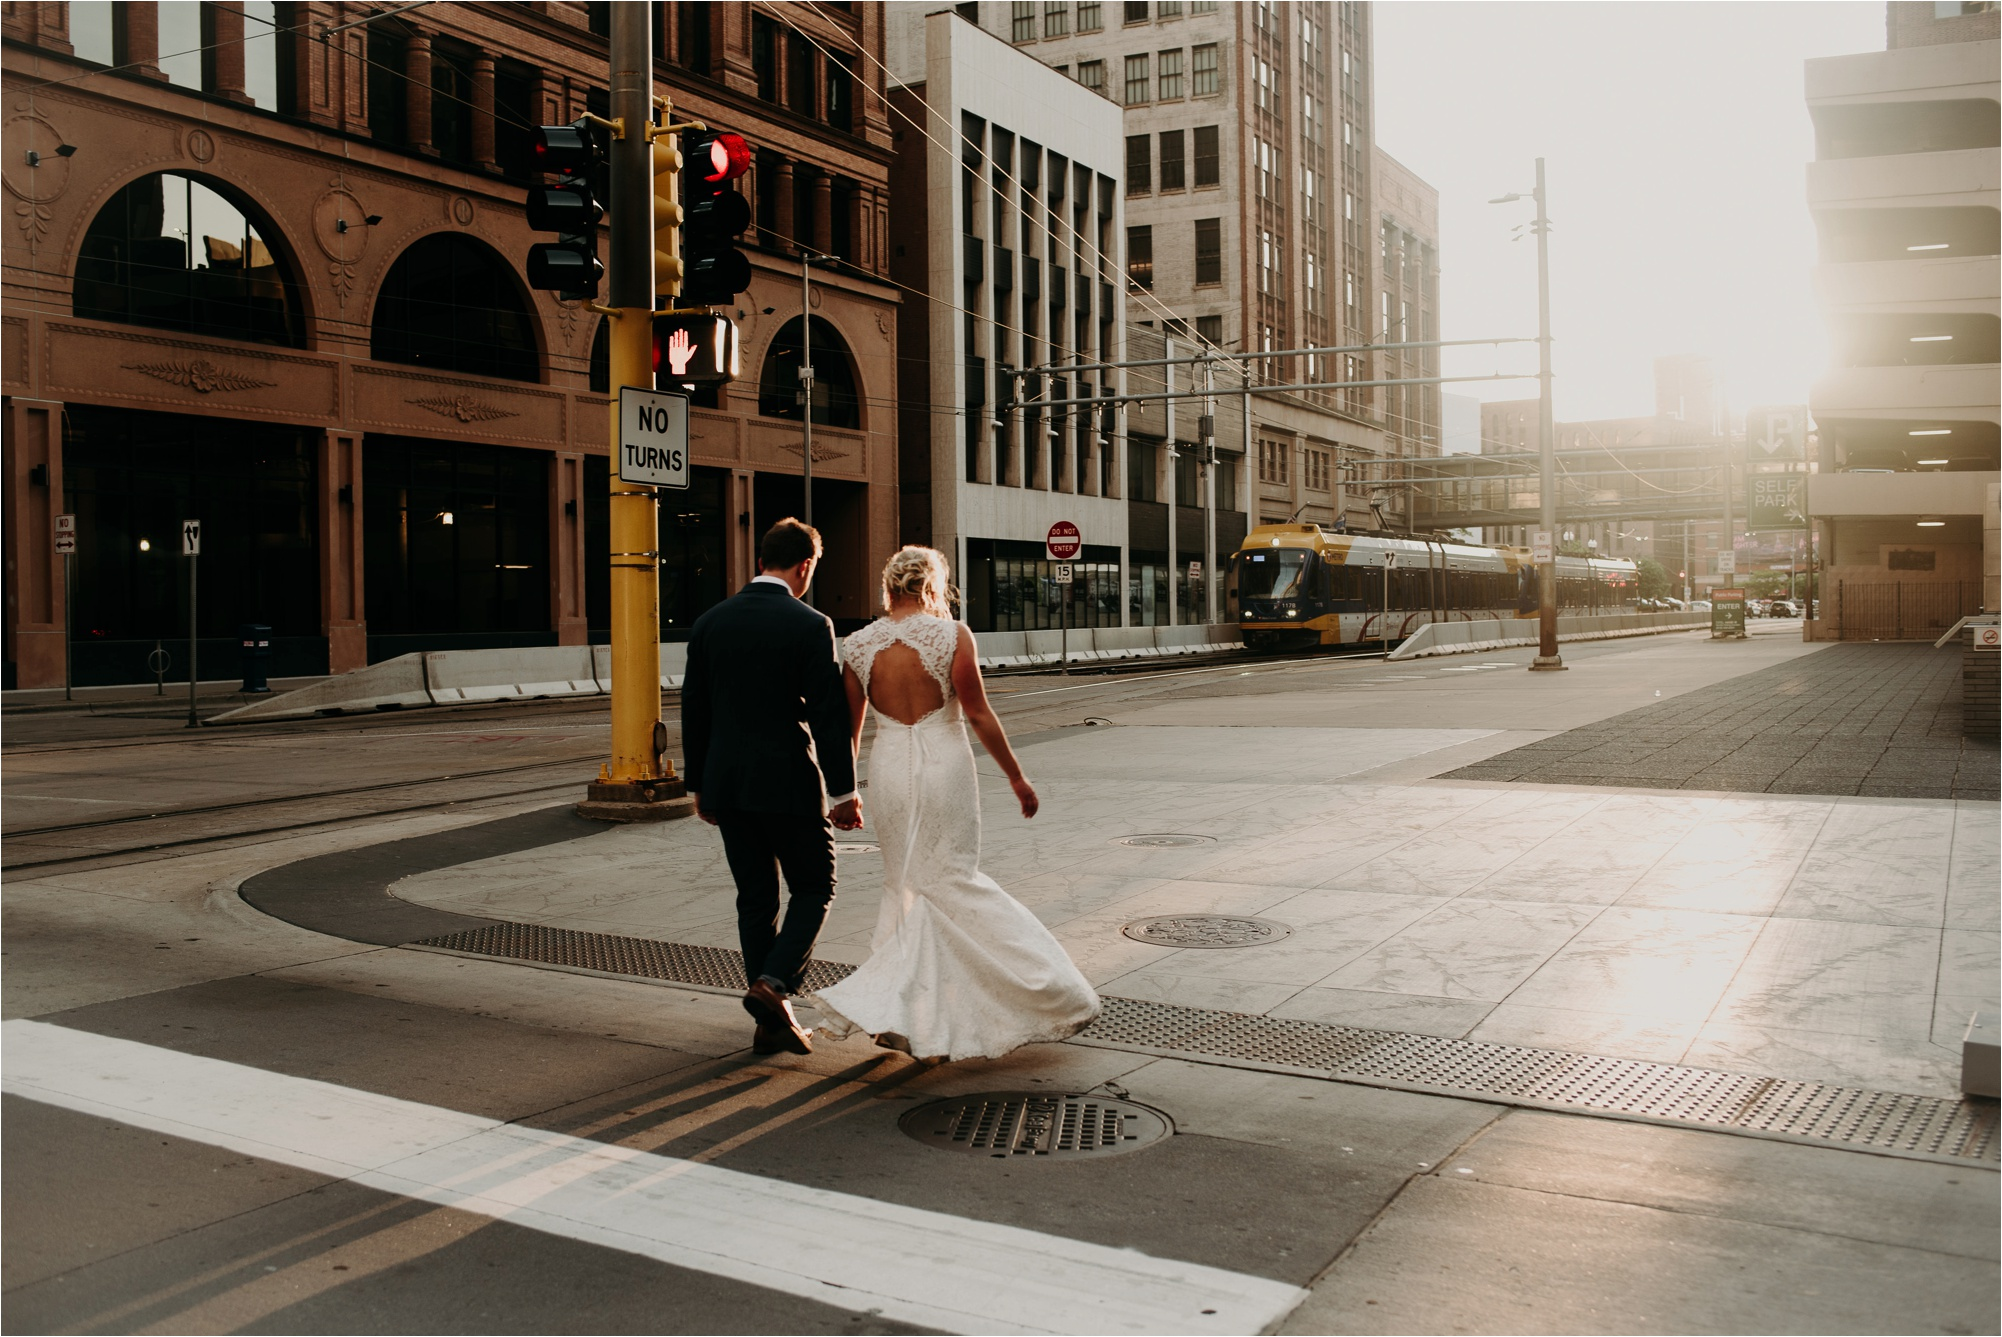 downtown minneapolis nicollet bride and groom wedding photography photos